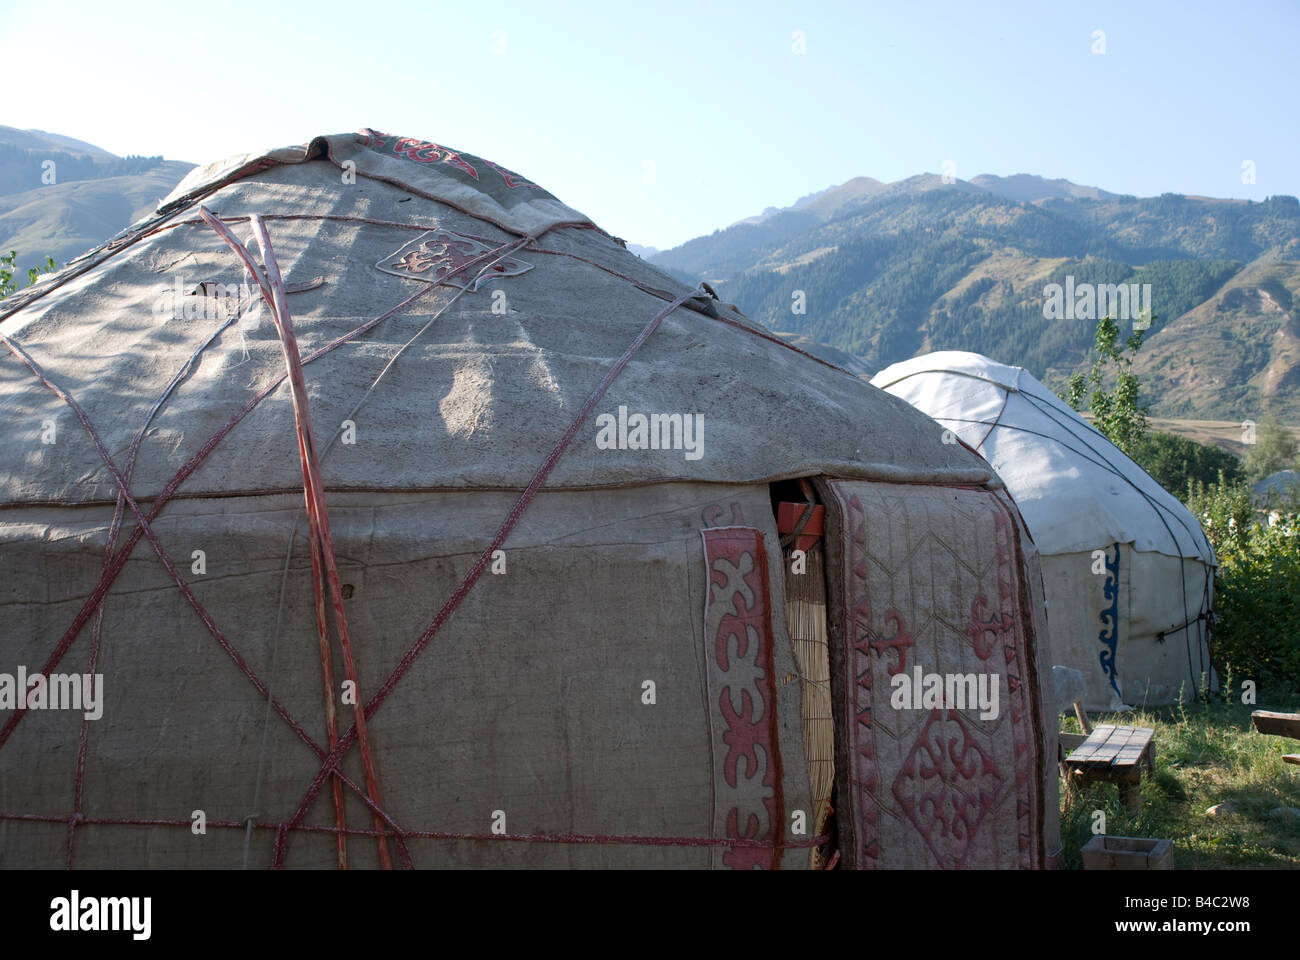 Two yurts in Kyrgyzstan - Stock Image